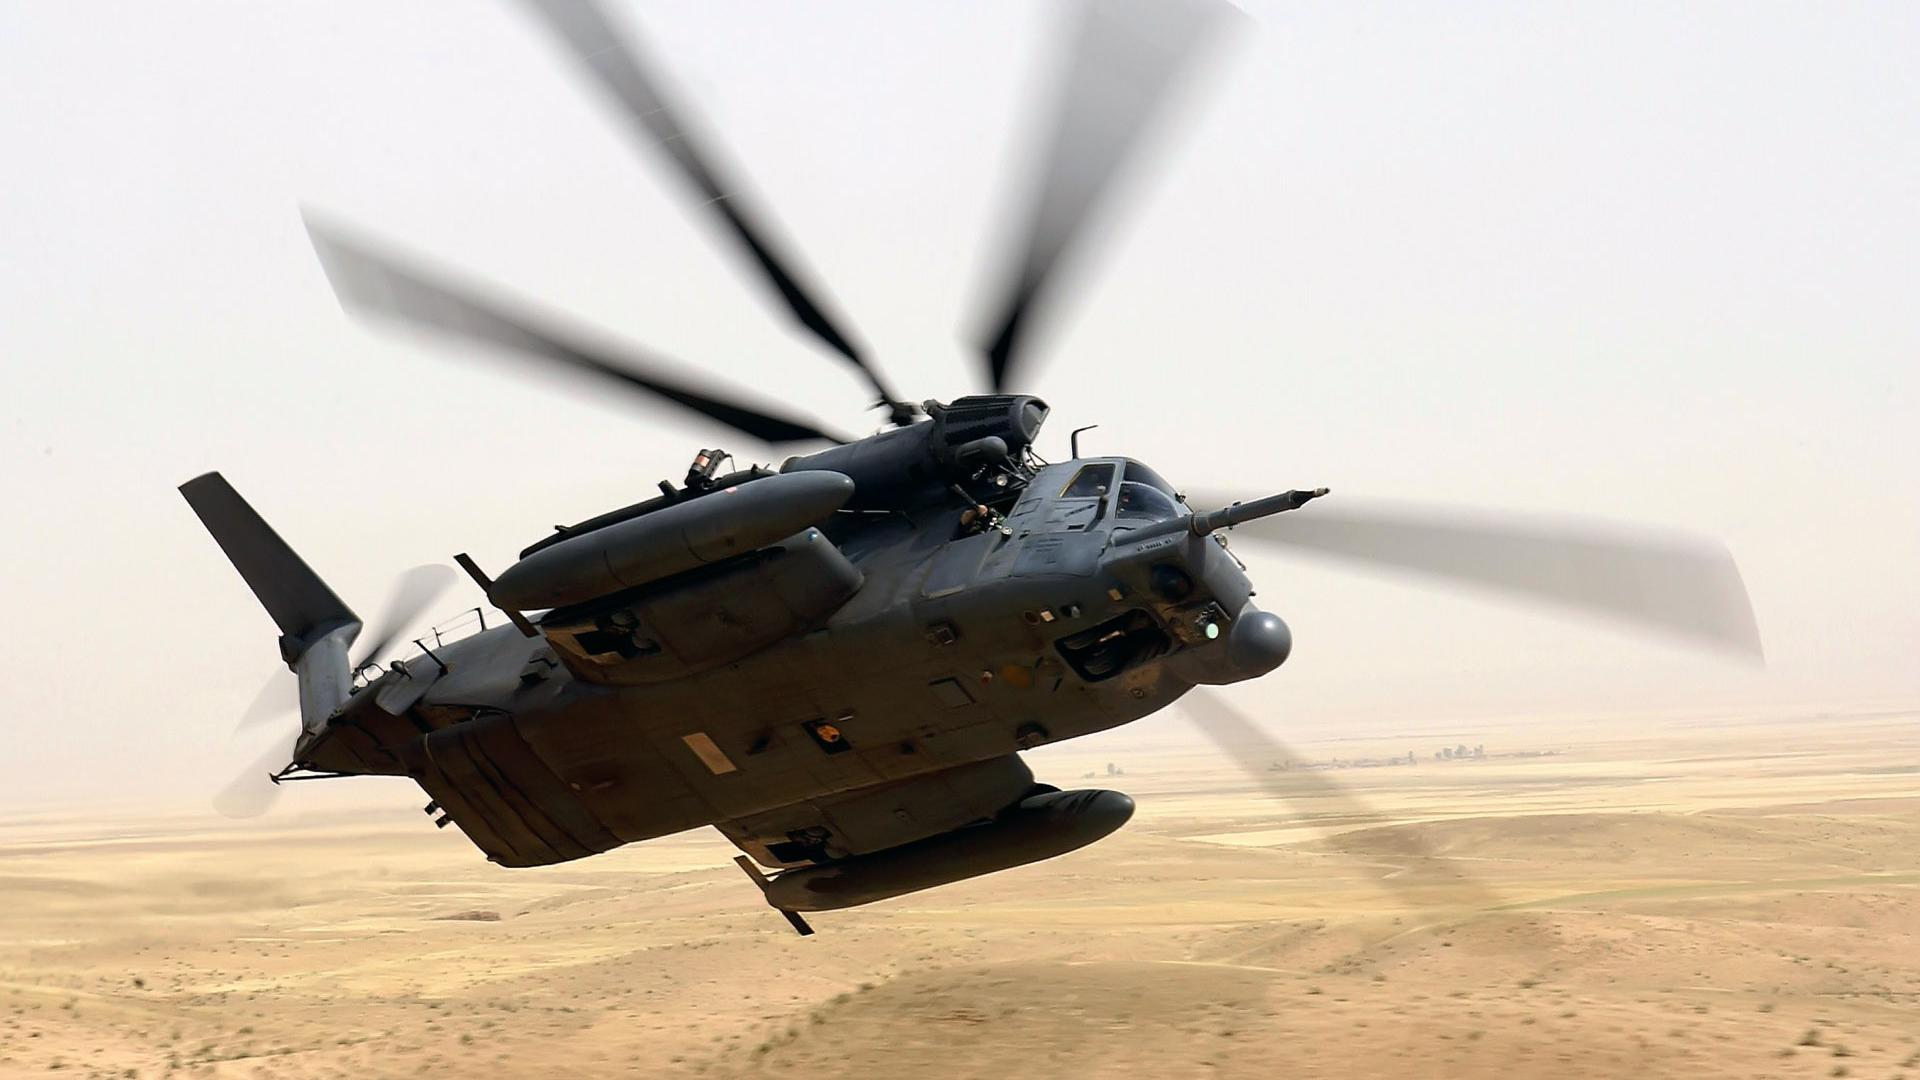 Helicopter HD 1920x1080 1920x1080